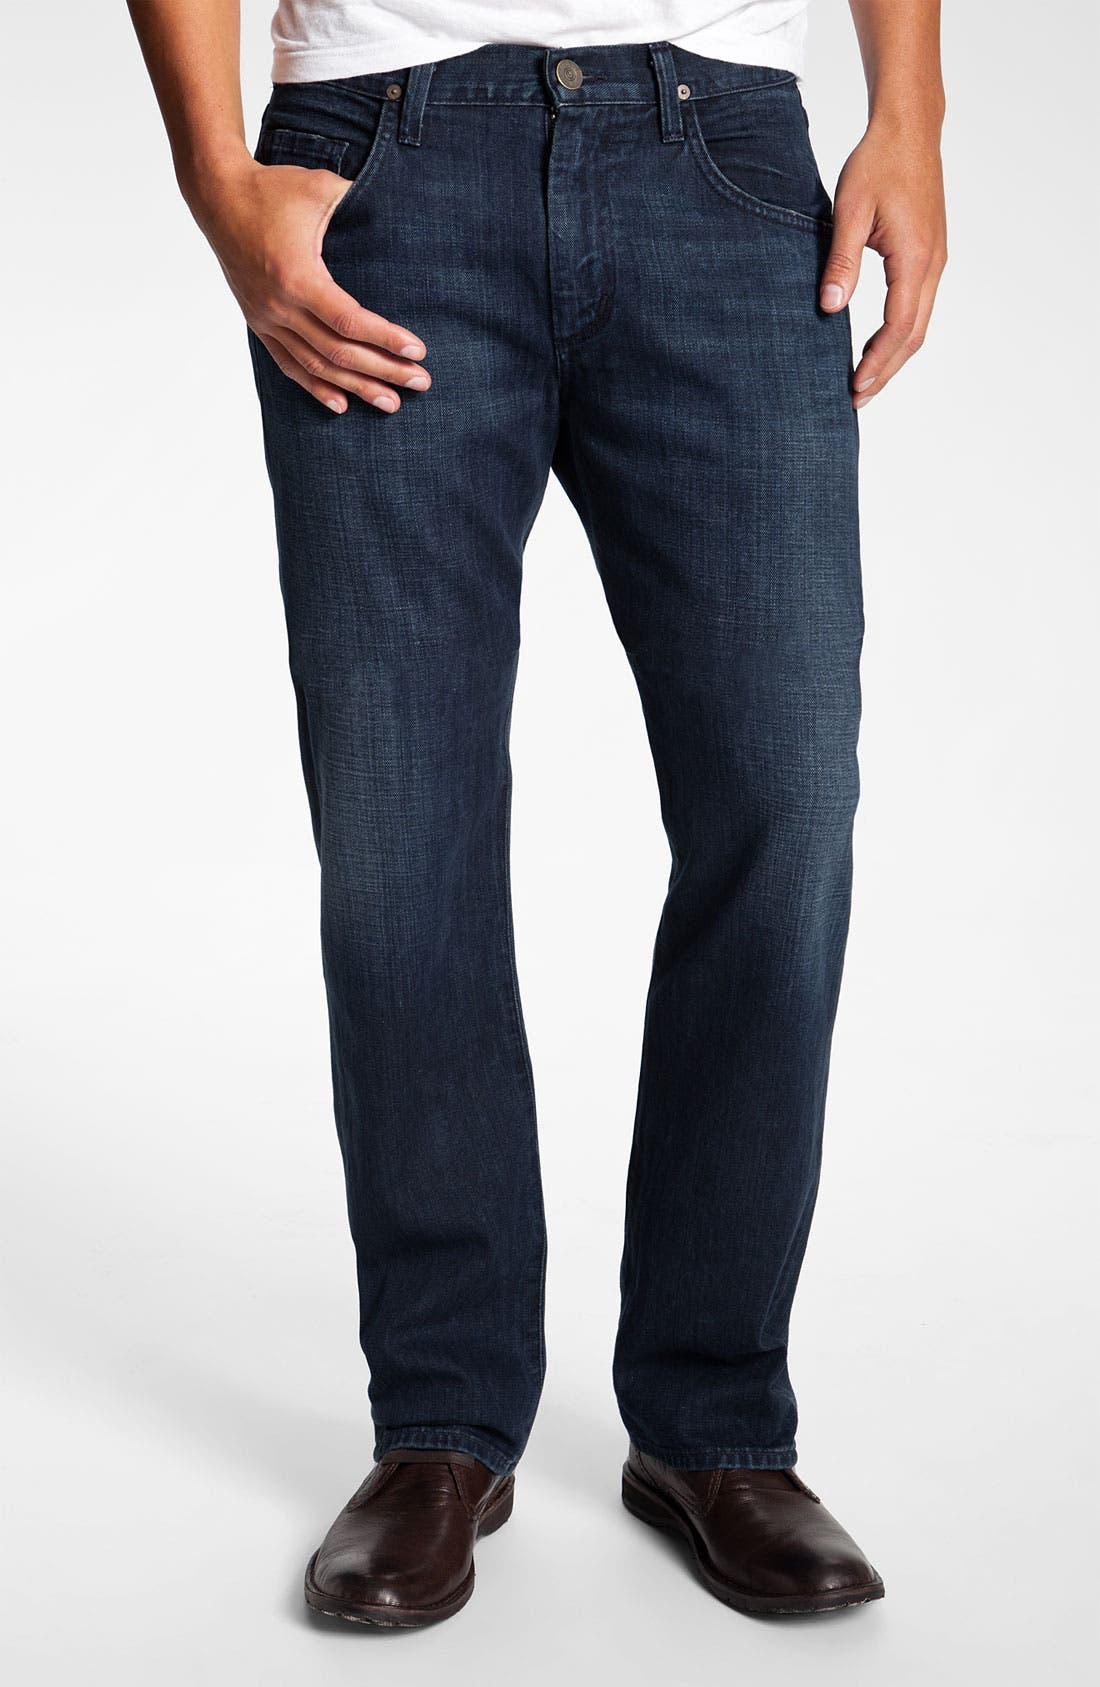 Alternate Image 1 Selected - Citizens of Humanity 'Perfect' Straight Leg Jeans (Frasier)